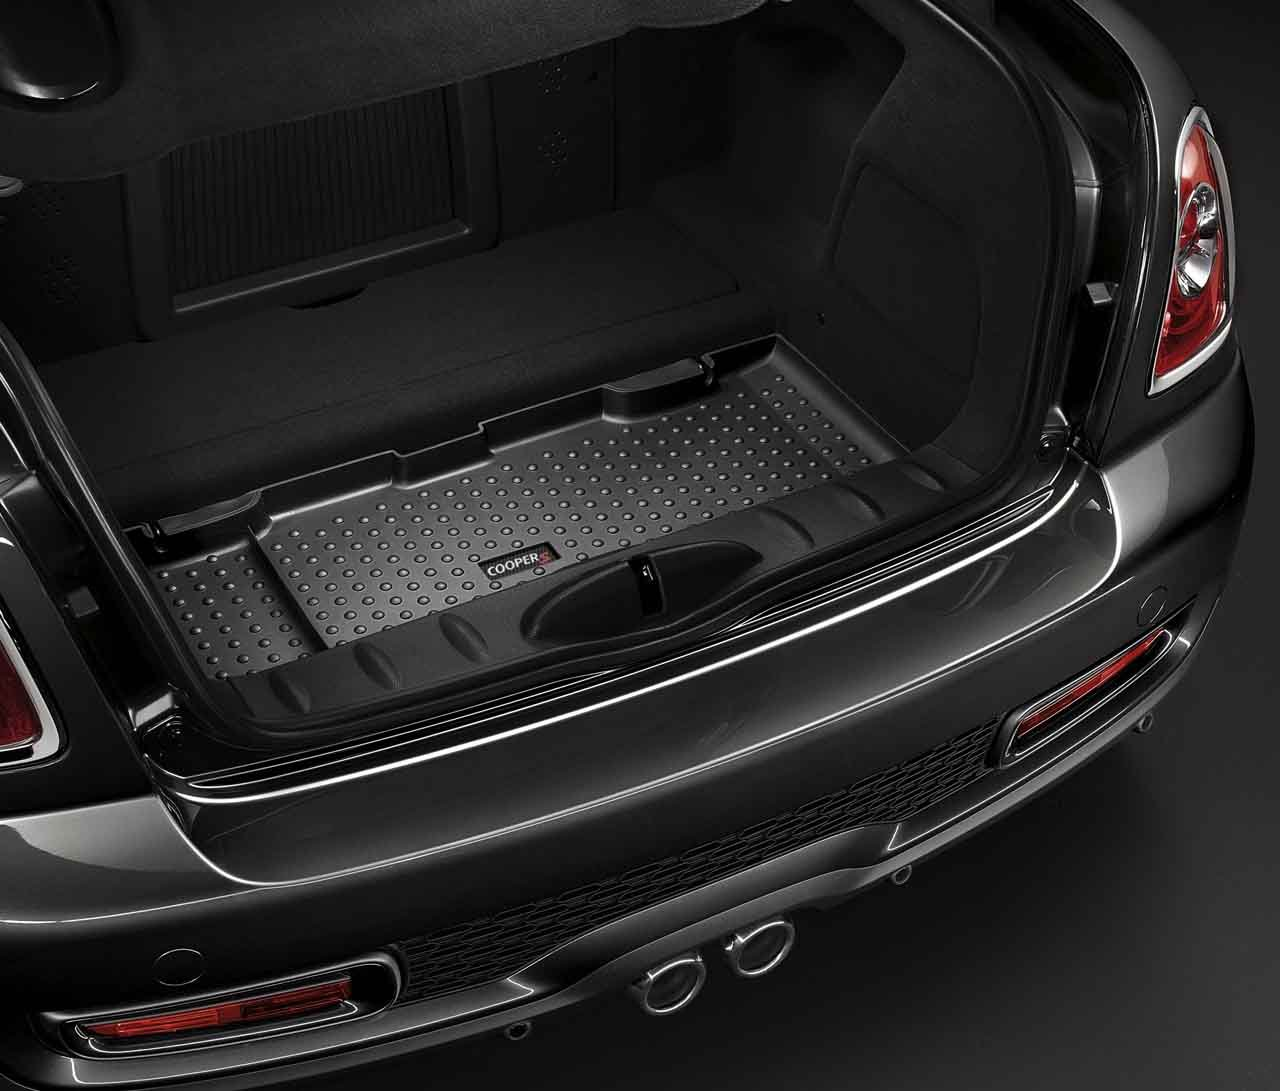 Mini cooper rubber floor mats uk - Mini Genuine Fitted Protective Car Boot Cover Liner Mat R56 R58 R59 51470418666